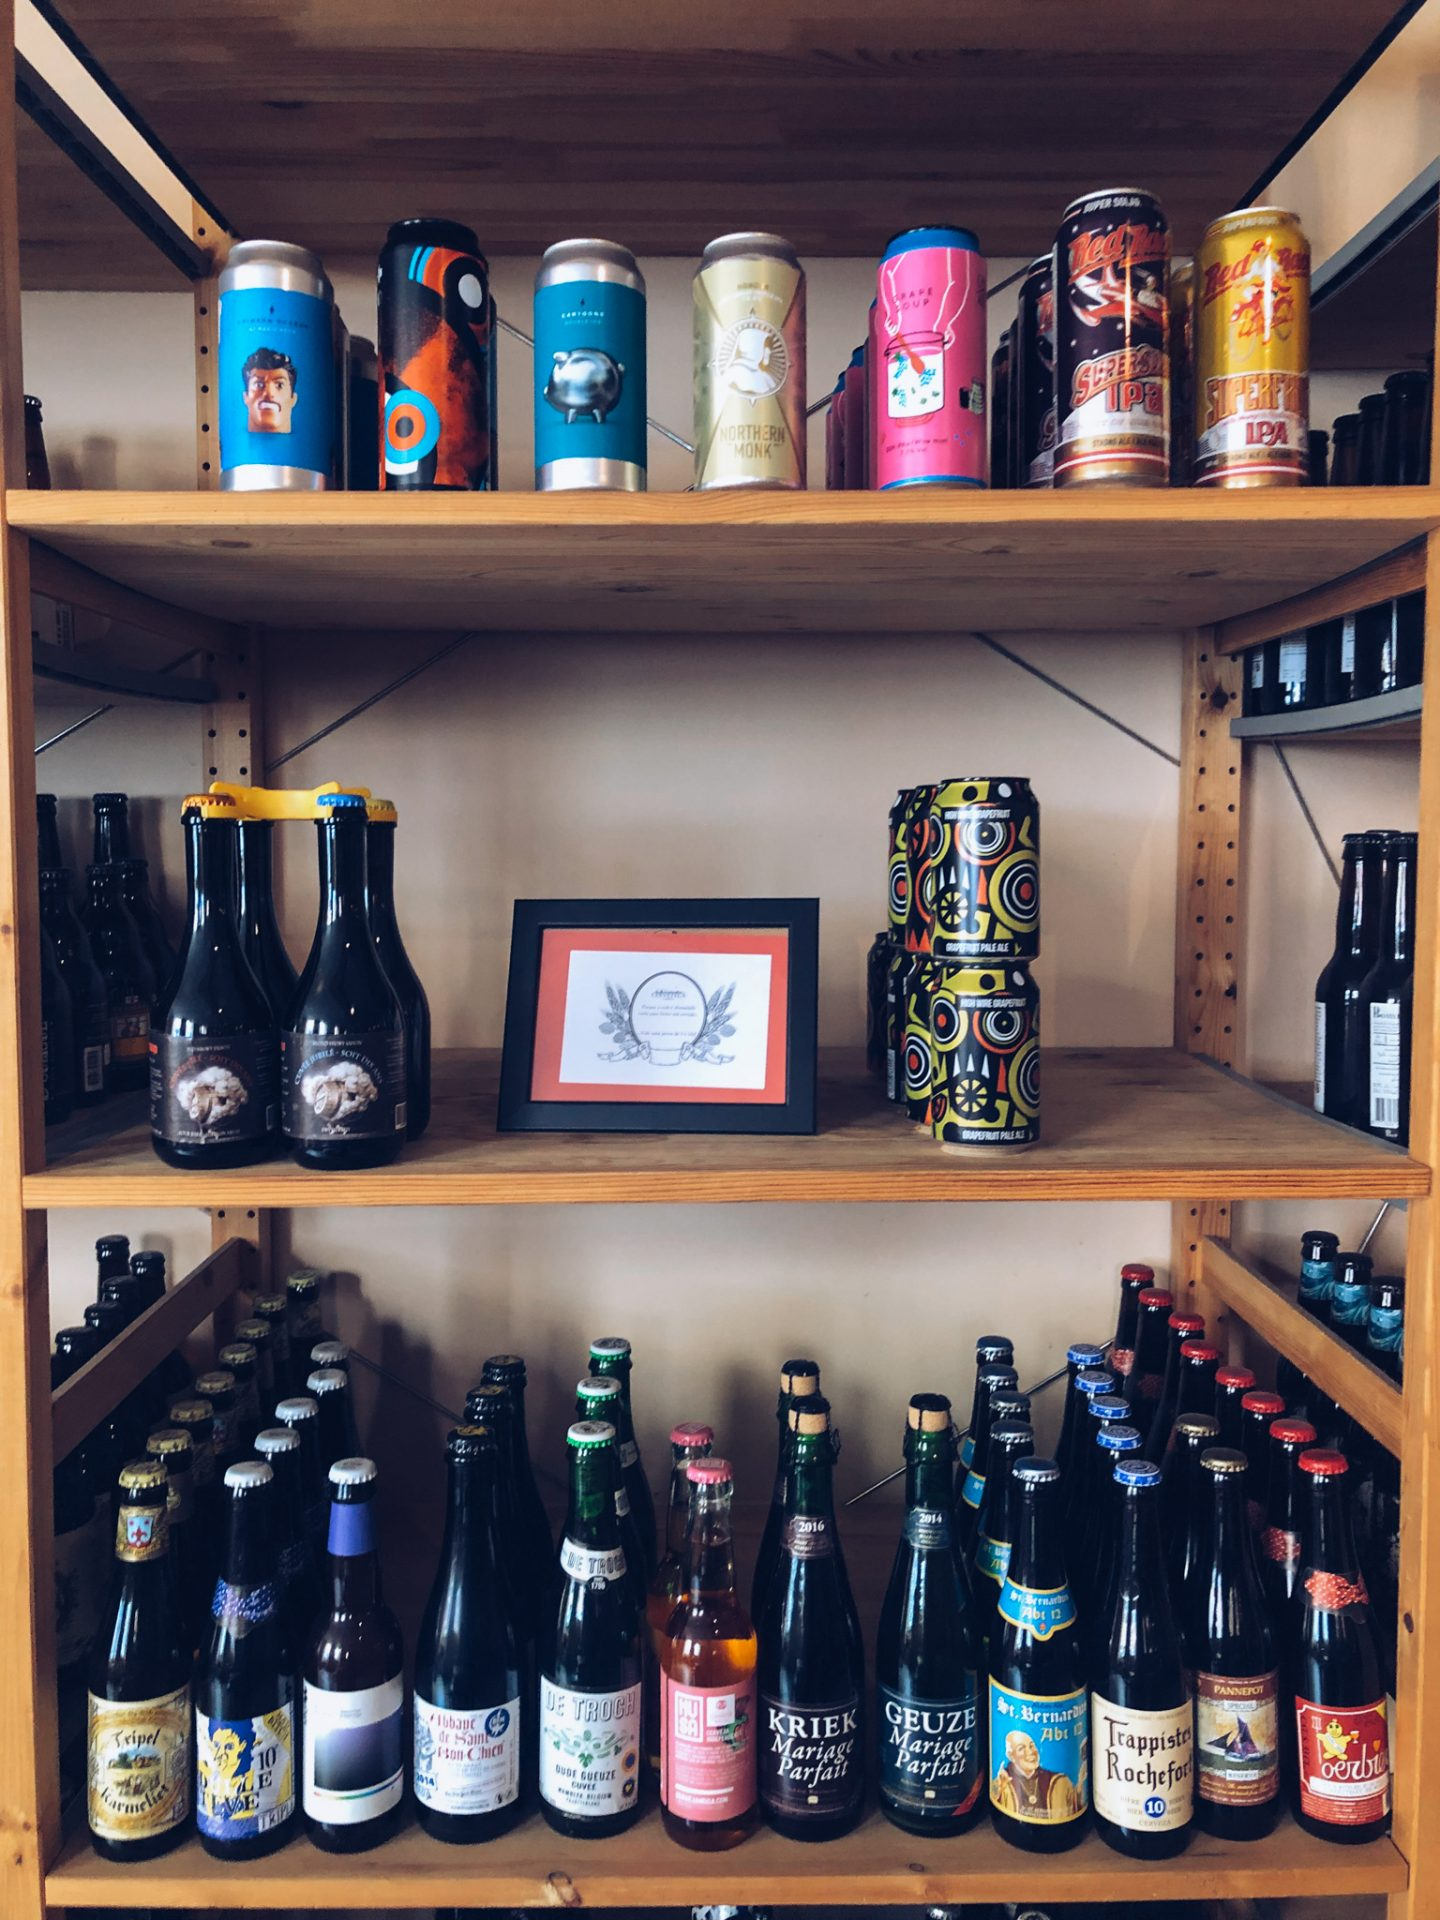 three shelves full of various bottle and cans of craft beer